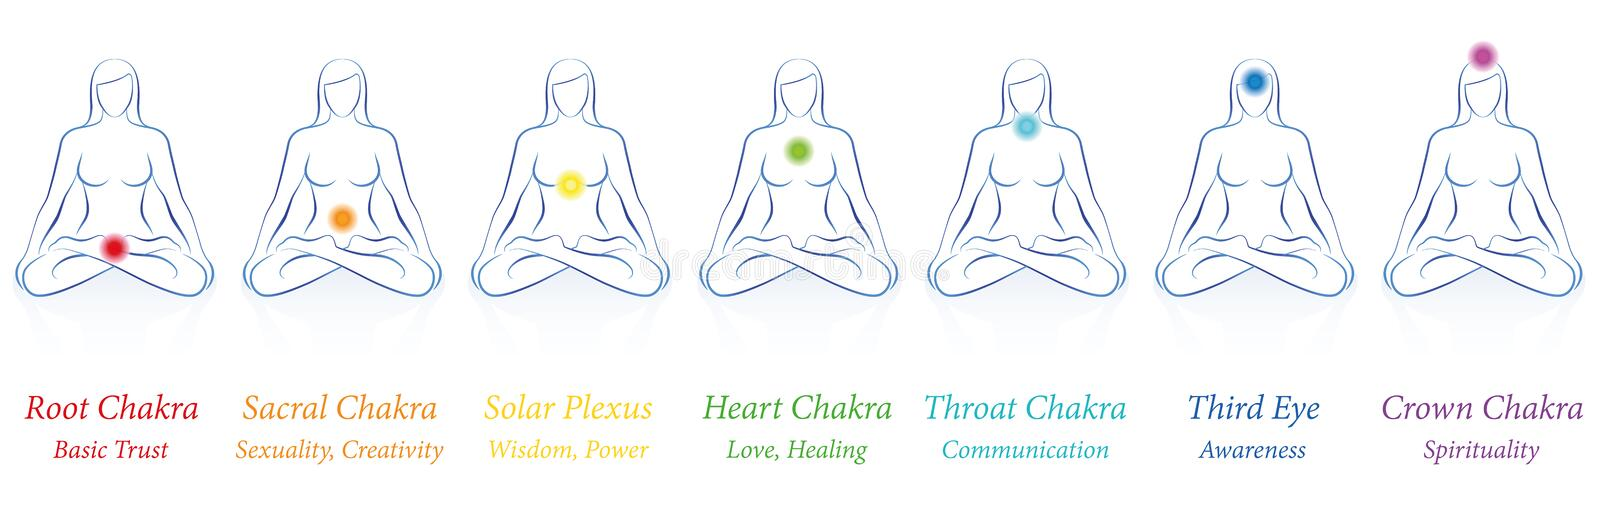 Chakras Woman Seven Colors Meanings stock illustration